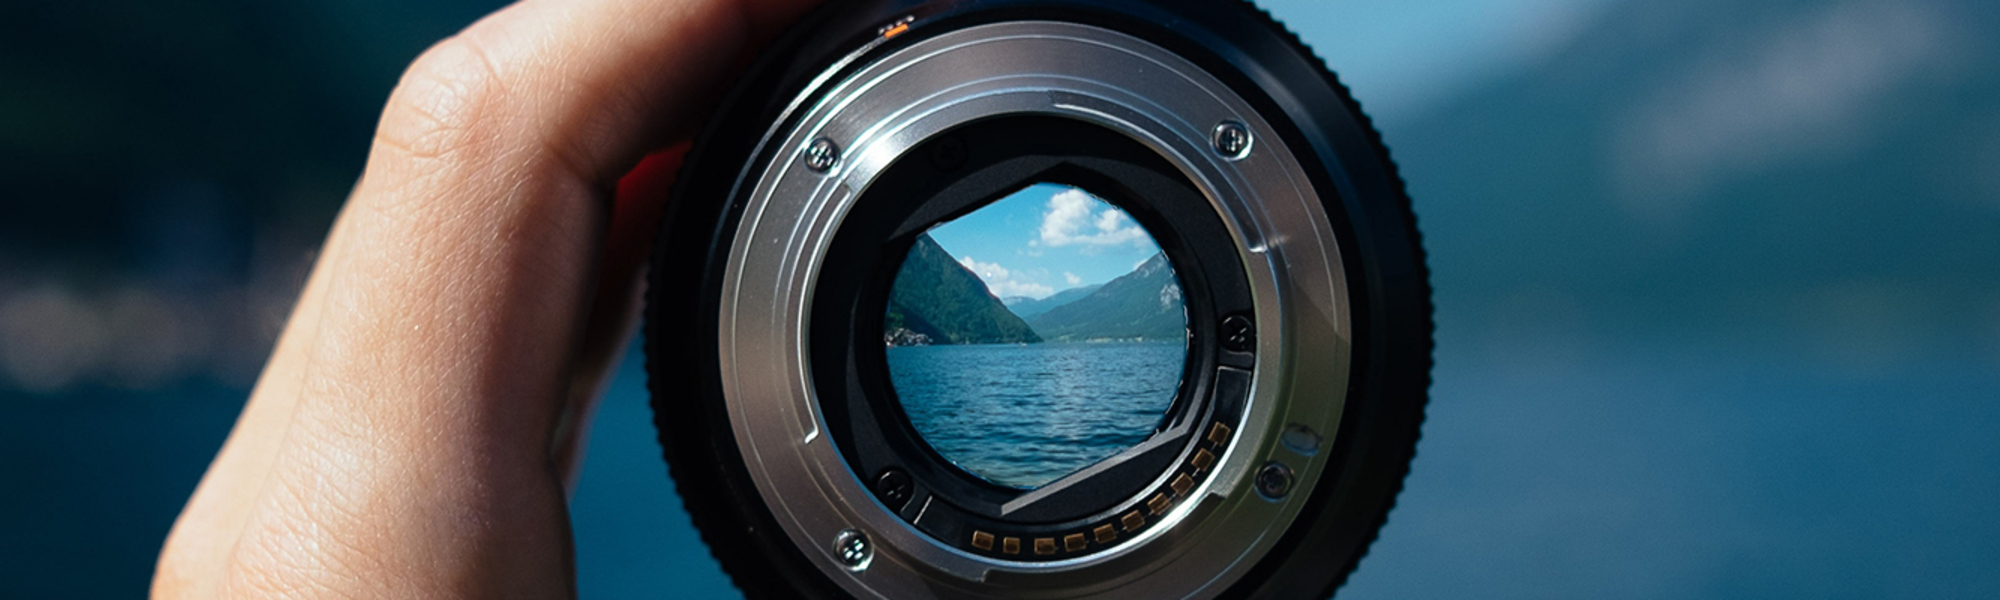 Looking through a camera lens at the water